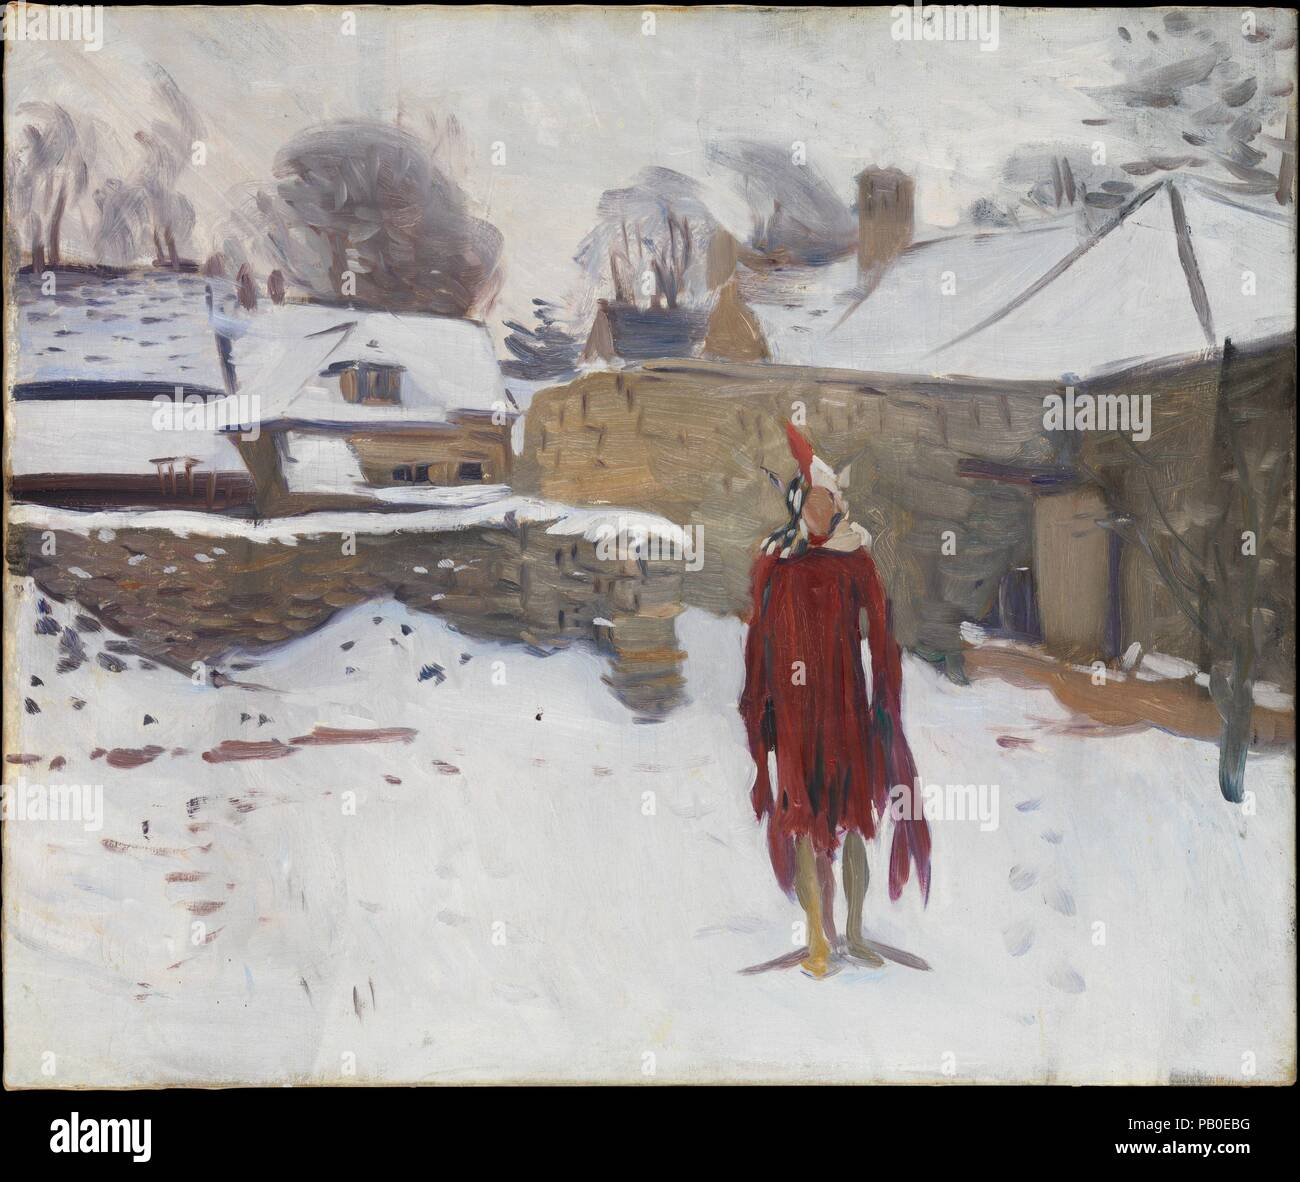 Mannikin in the Snow. Artist: John Singer Sargent (American, Florence 1856-1925 London). Dimensions: 25 x 30 in. (63.5 x 76.2 cm). Date: ca. 1891-93.  Sargent painted this canvas in the company of his fellow expatriate Edwin Austin Abbey in Fairford, Gloucestershire, where the two artists had rented a studio for their work on mural commissions. As a diversion one day, they arranged a mannequin in the snow and painted oil sketches of it from their studio window. The results reveal their dissimilar approaches to art. The critic Royal Cortissoz recalled that Abbey conjured from the mannequin a li Stock Photo